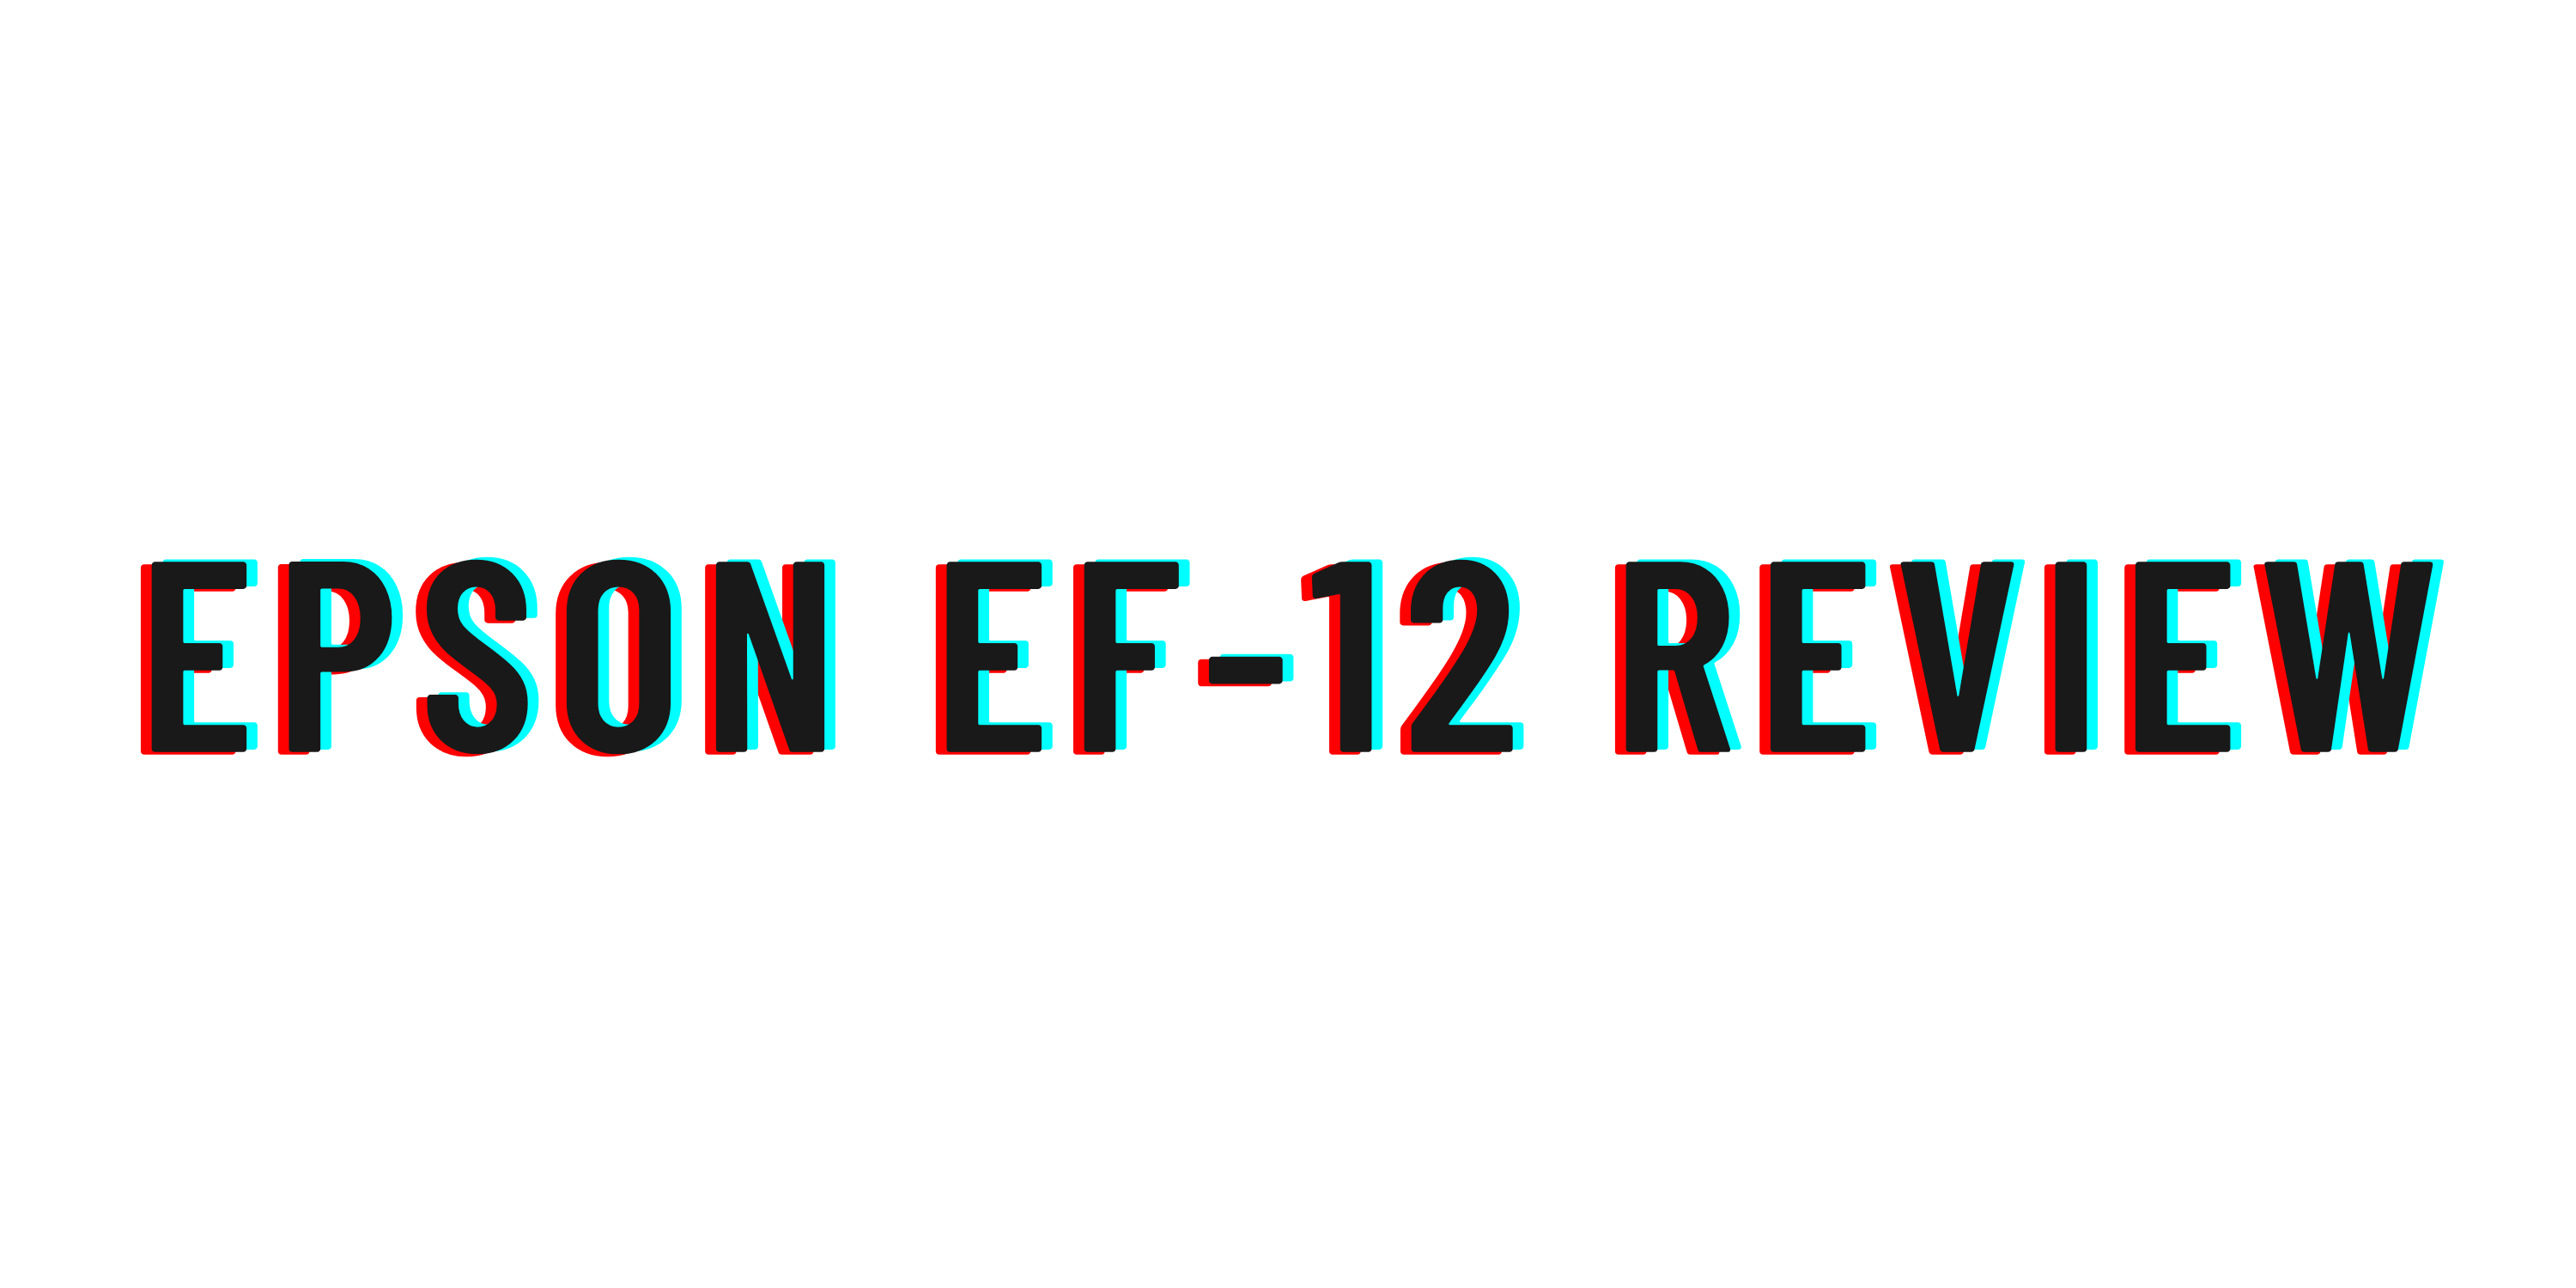 Epson EF-12 review